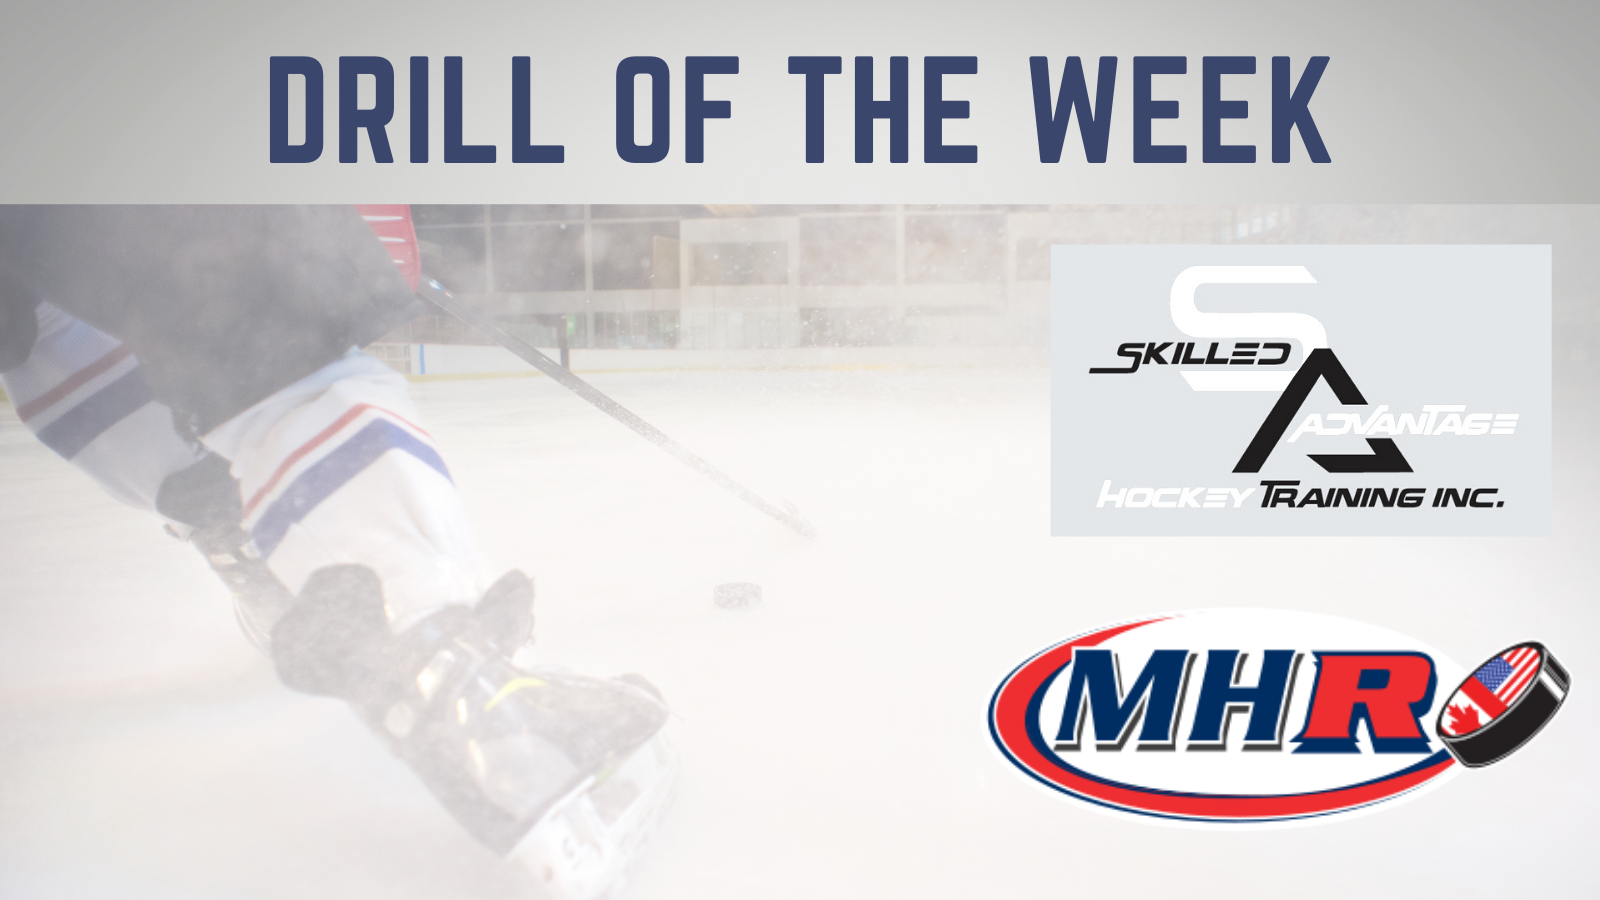 Drill of the Week 3 Powered by Skilled Advantage Hockey